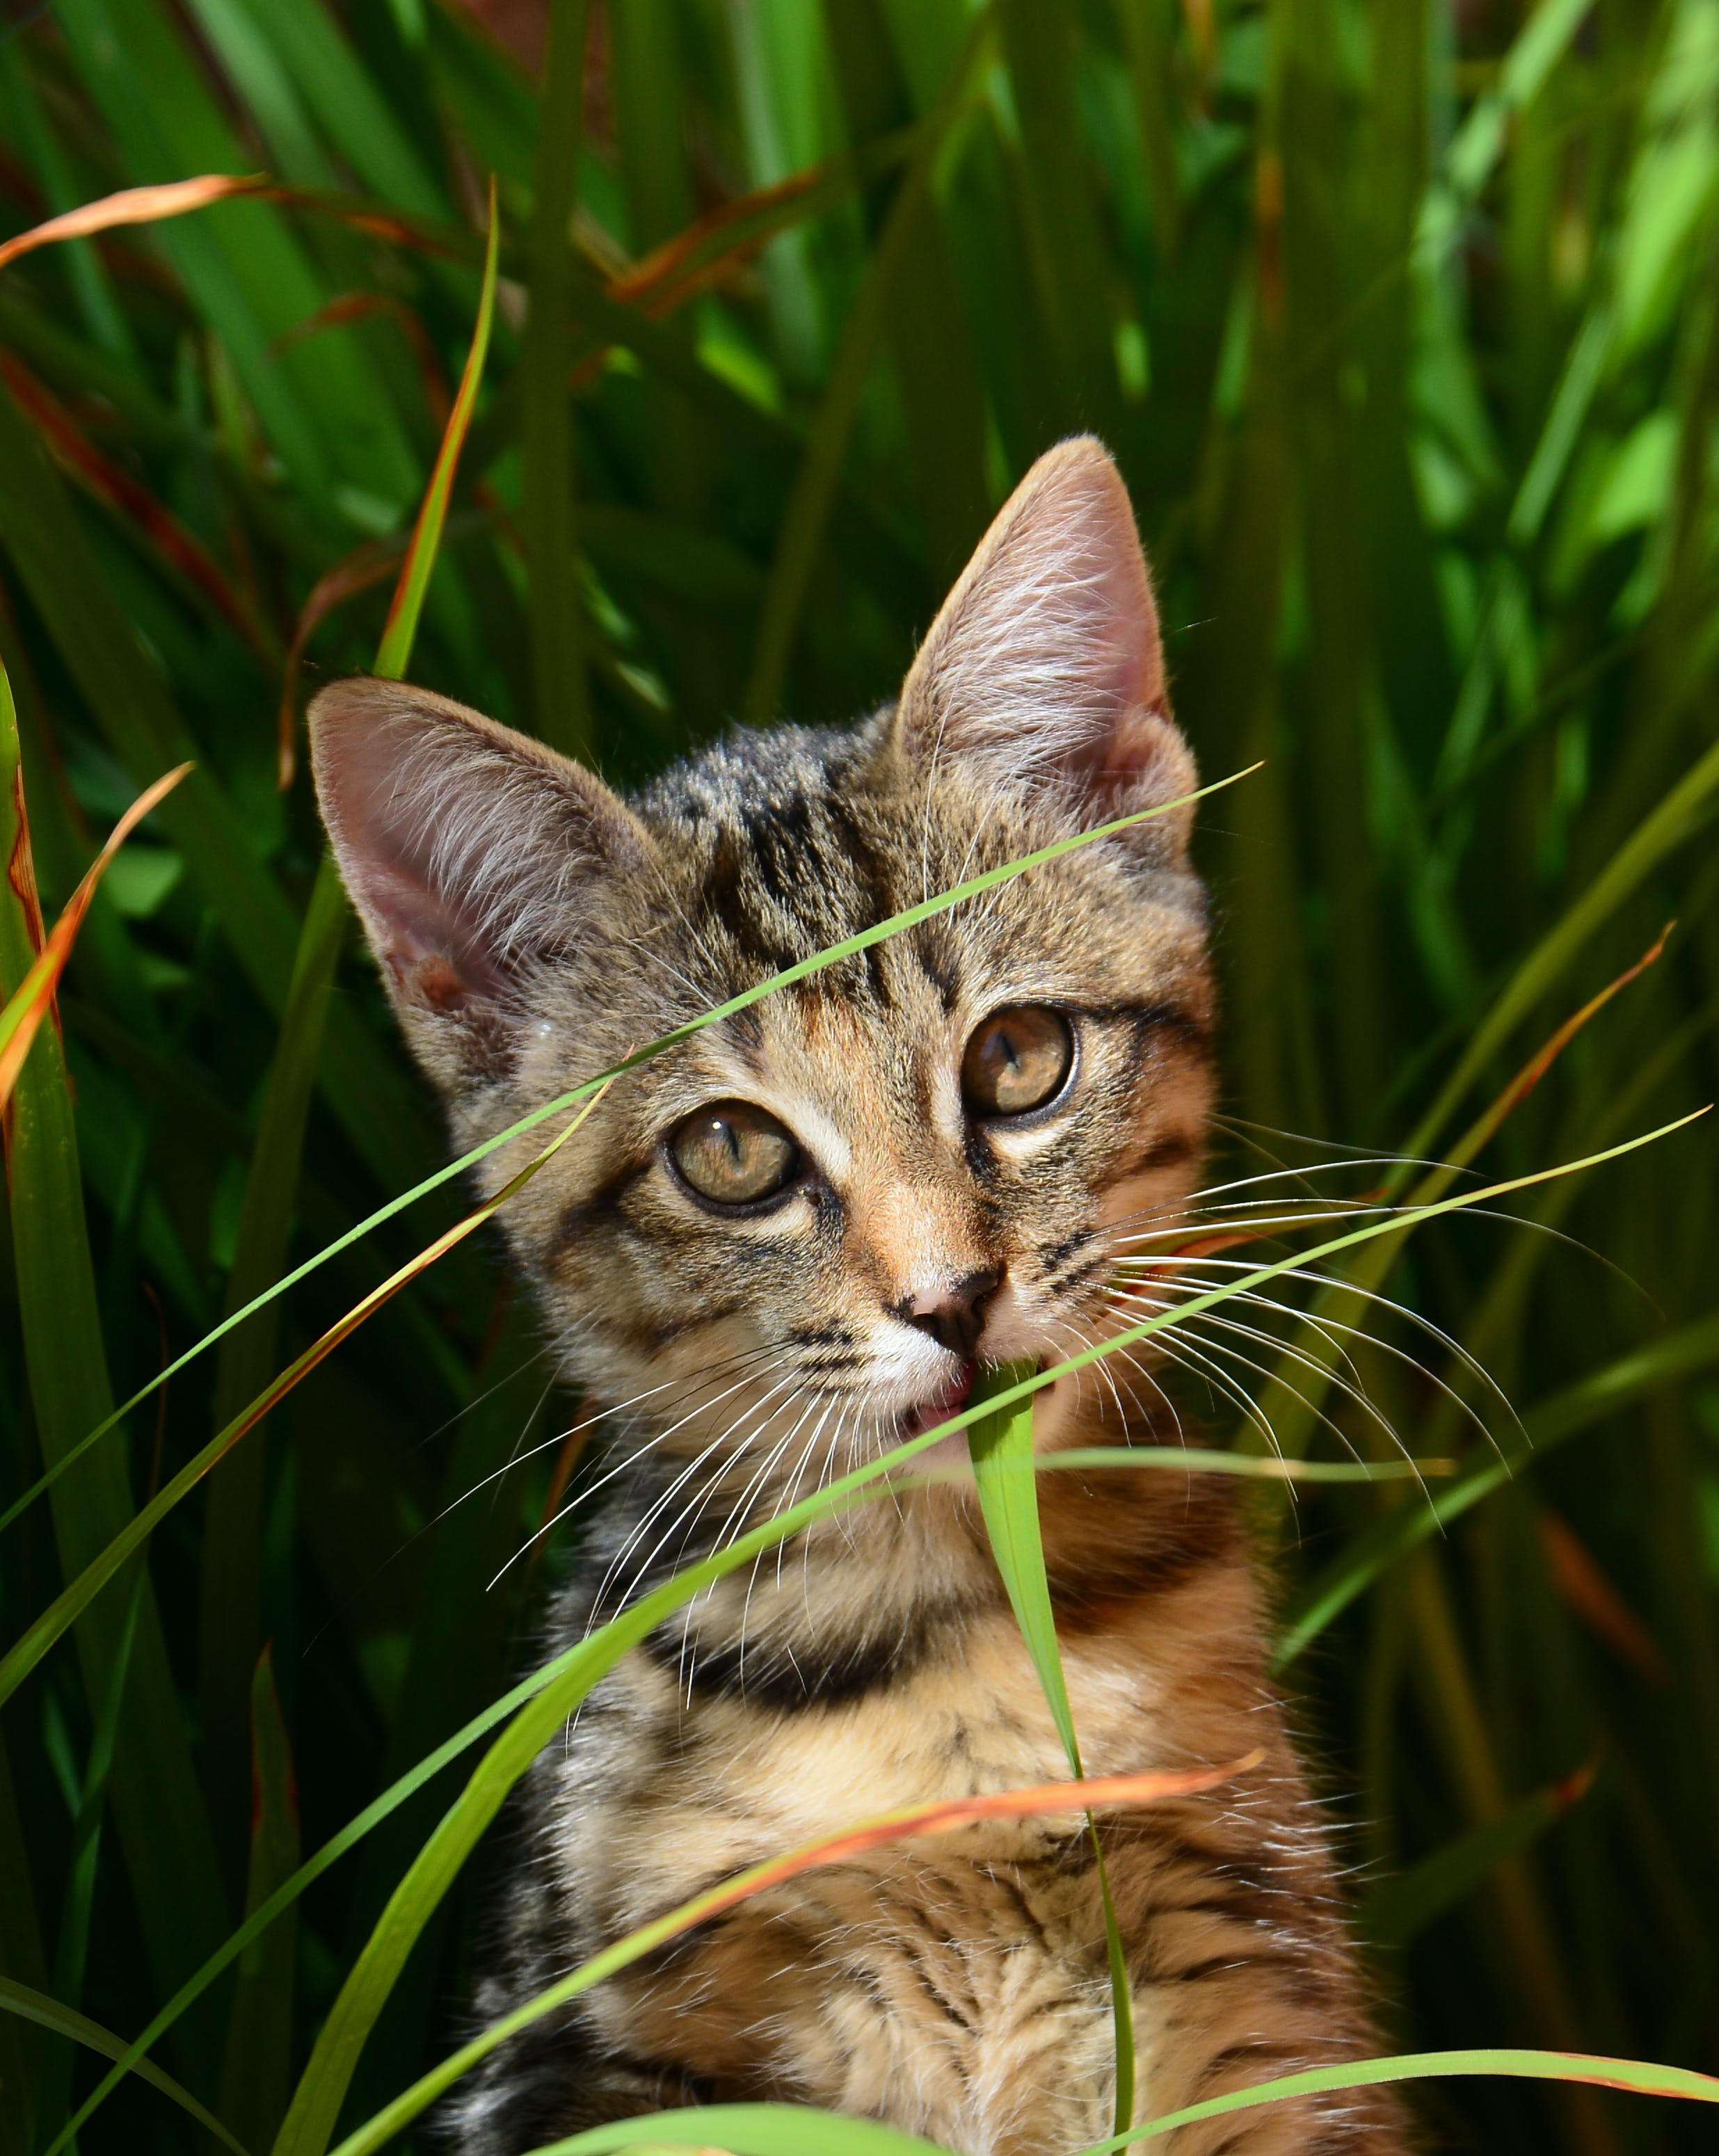 Grey and Brown Tabby Cat Surrounded by Green Leaf